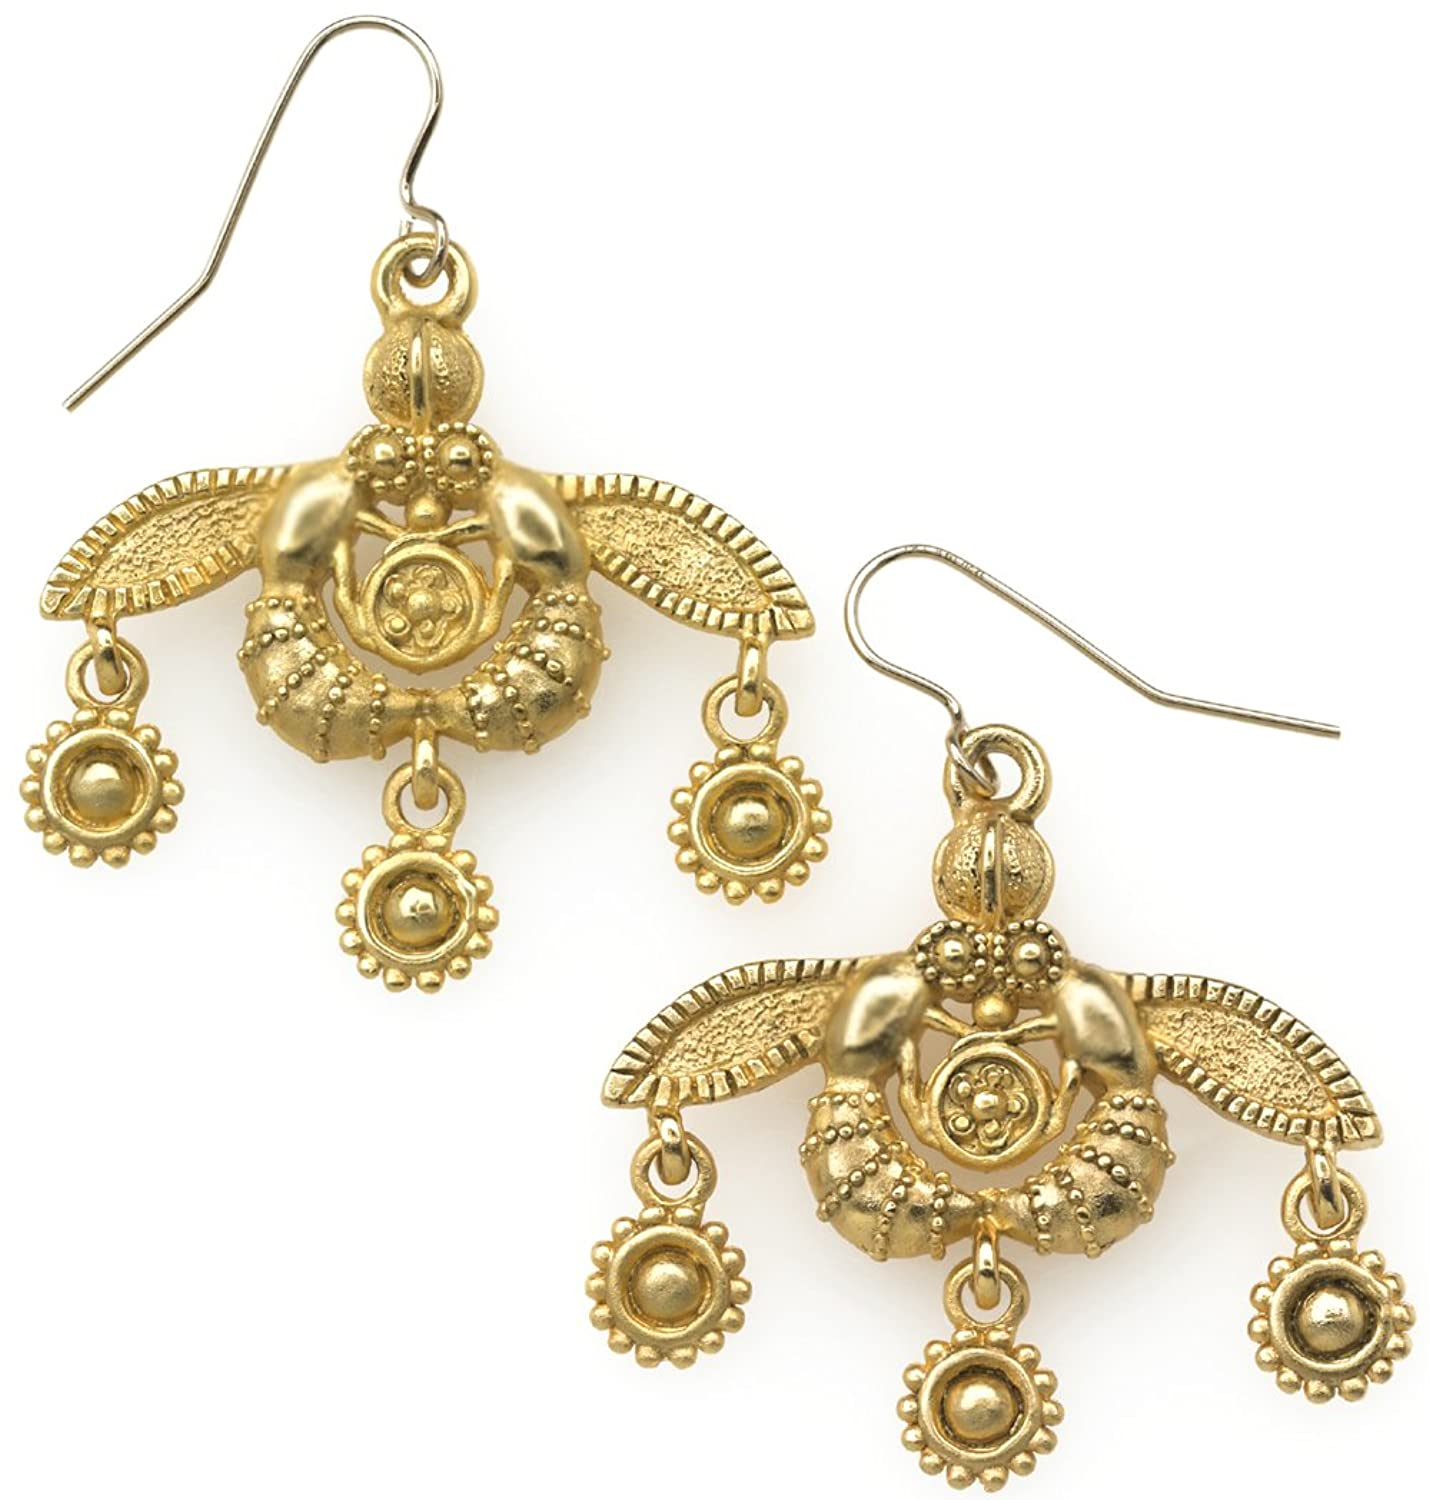 Amazon.com Reproduction of the Greek Minoan Bees Earrings From Our Museum Collection Dangle Earrings Jewelry  sc 1 st  Amazon.com & Amazon.com: Reproduction of the Greek Minoan Bees Earrings From Our ...